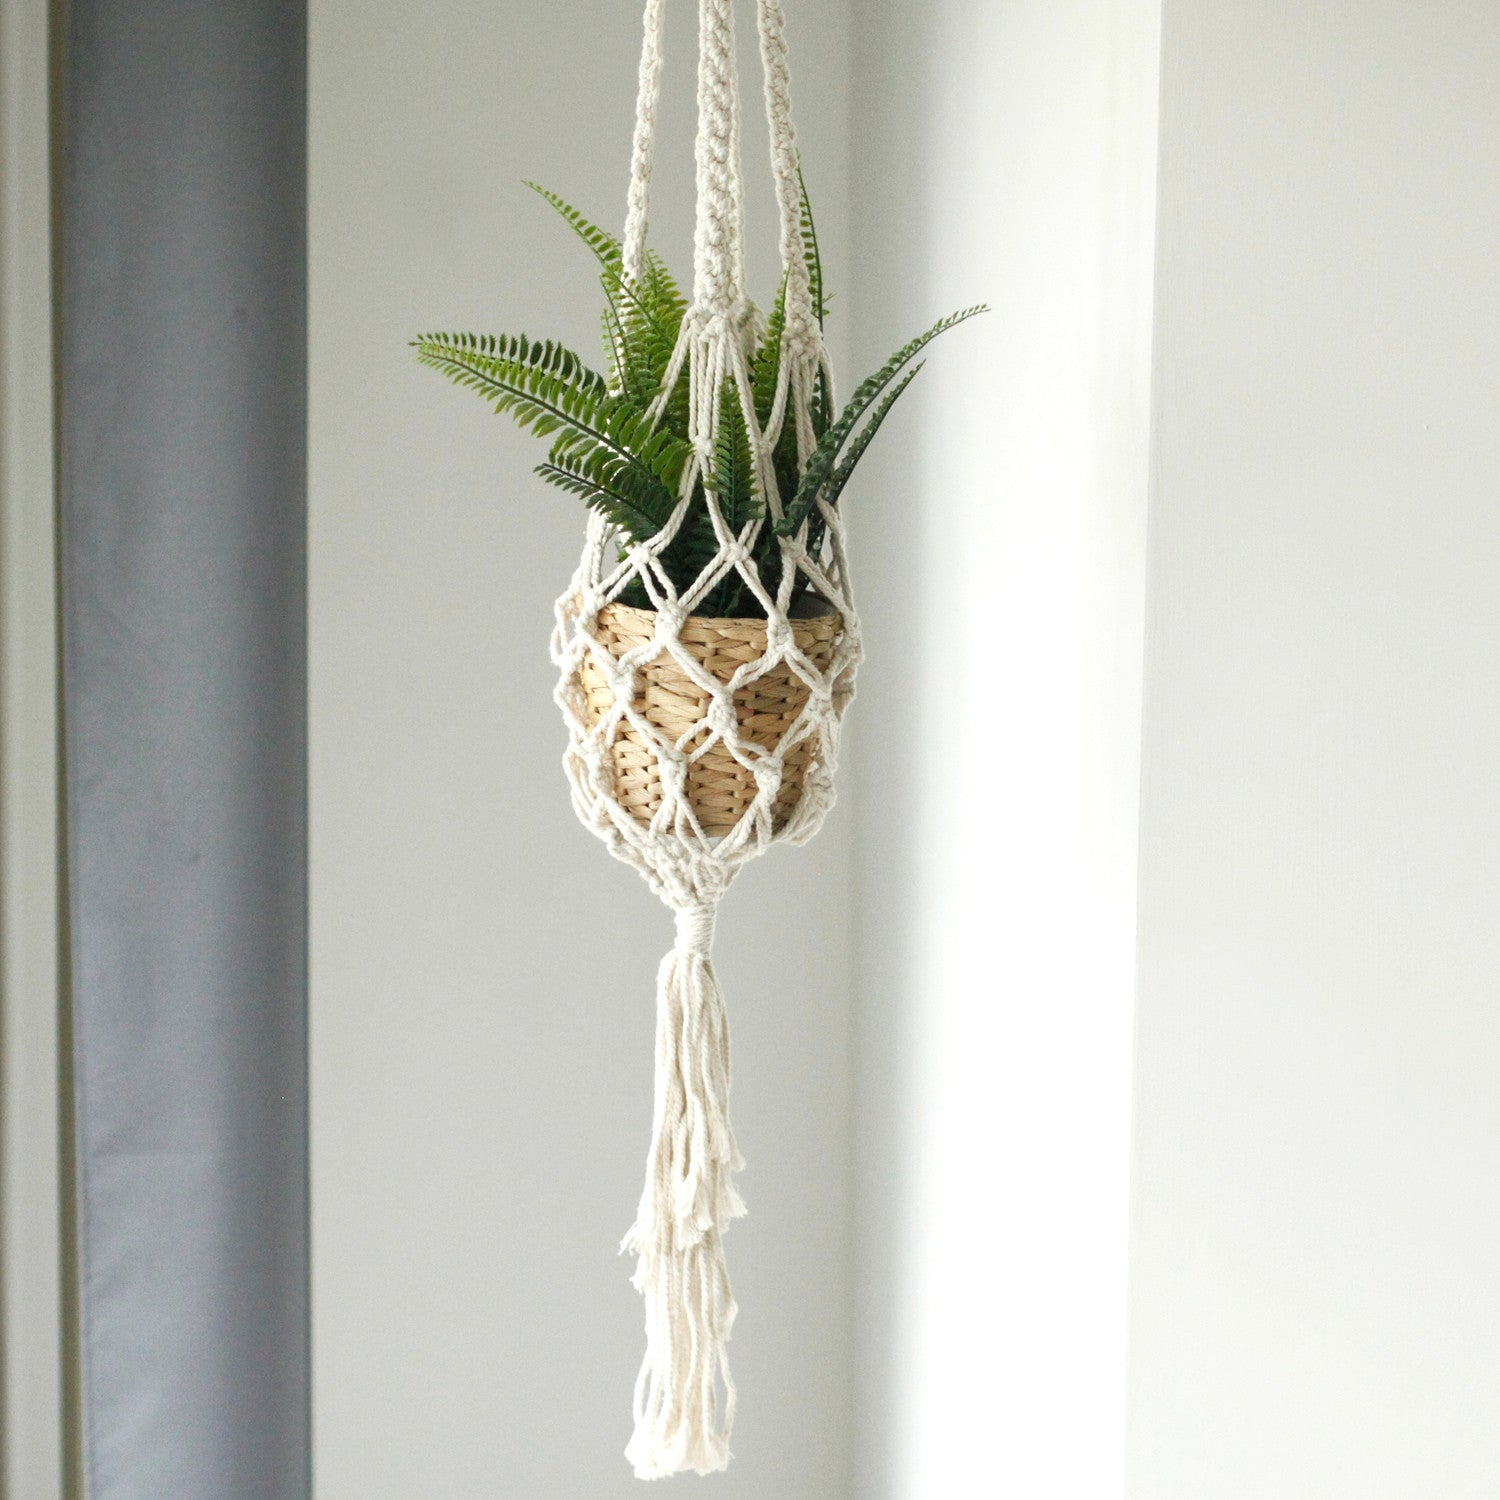 Macrame Pot Holder - Large Pot Holder - Extra Long - earth and vine